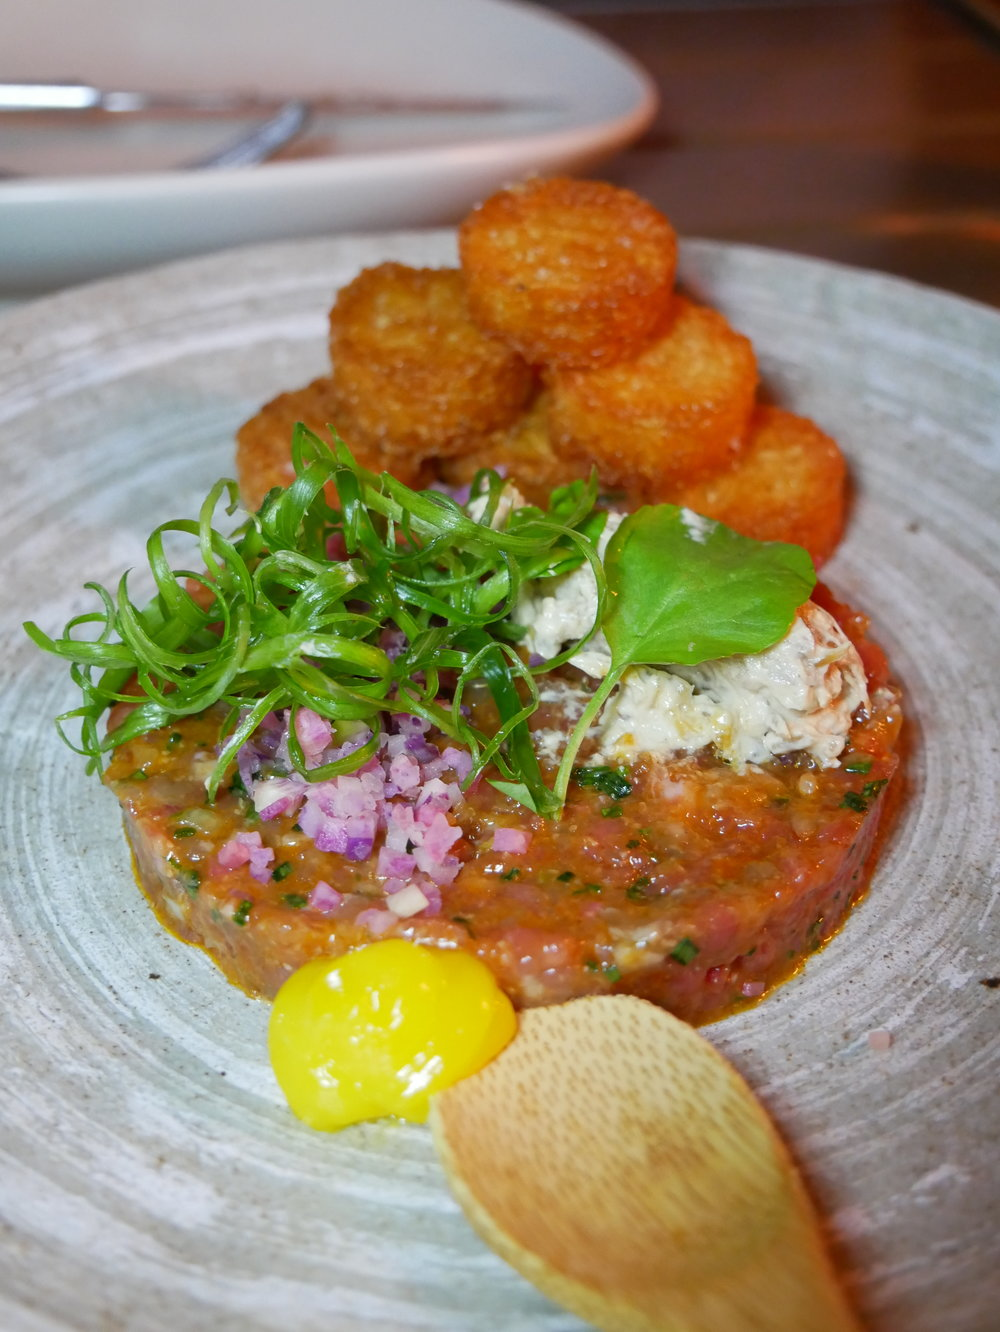 Steak tartare with tater tots, egg yolk, watercress and caramelized onion dip